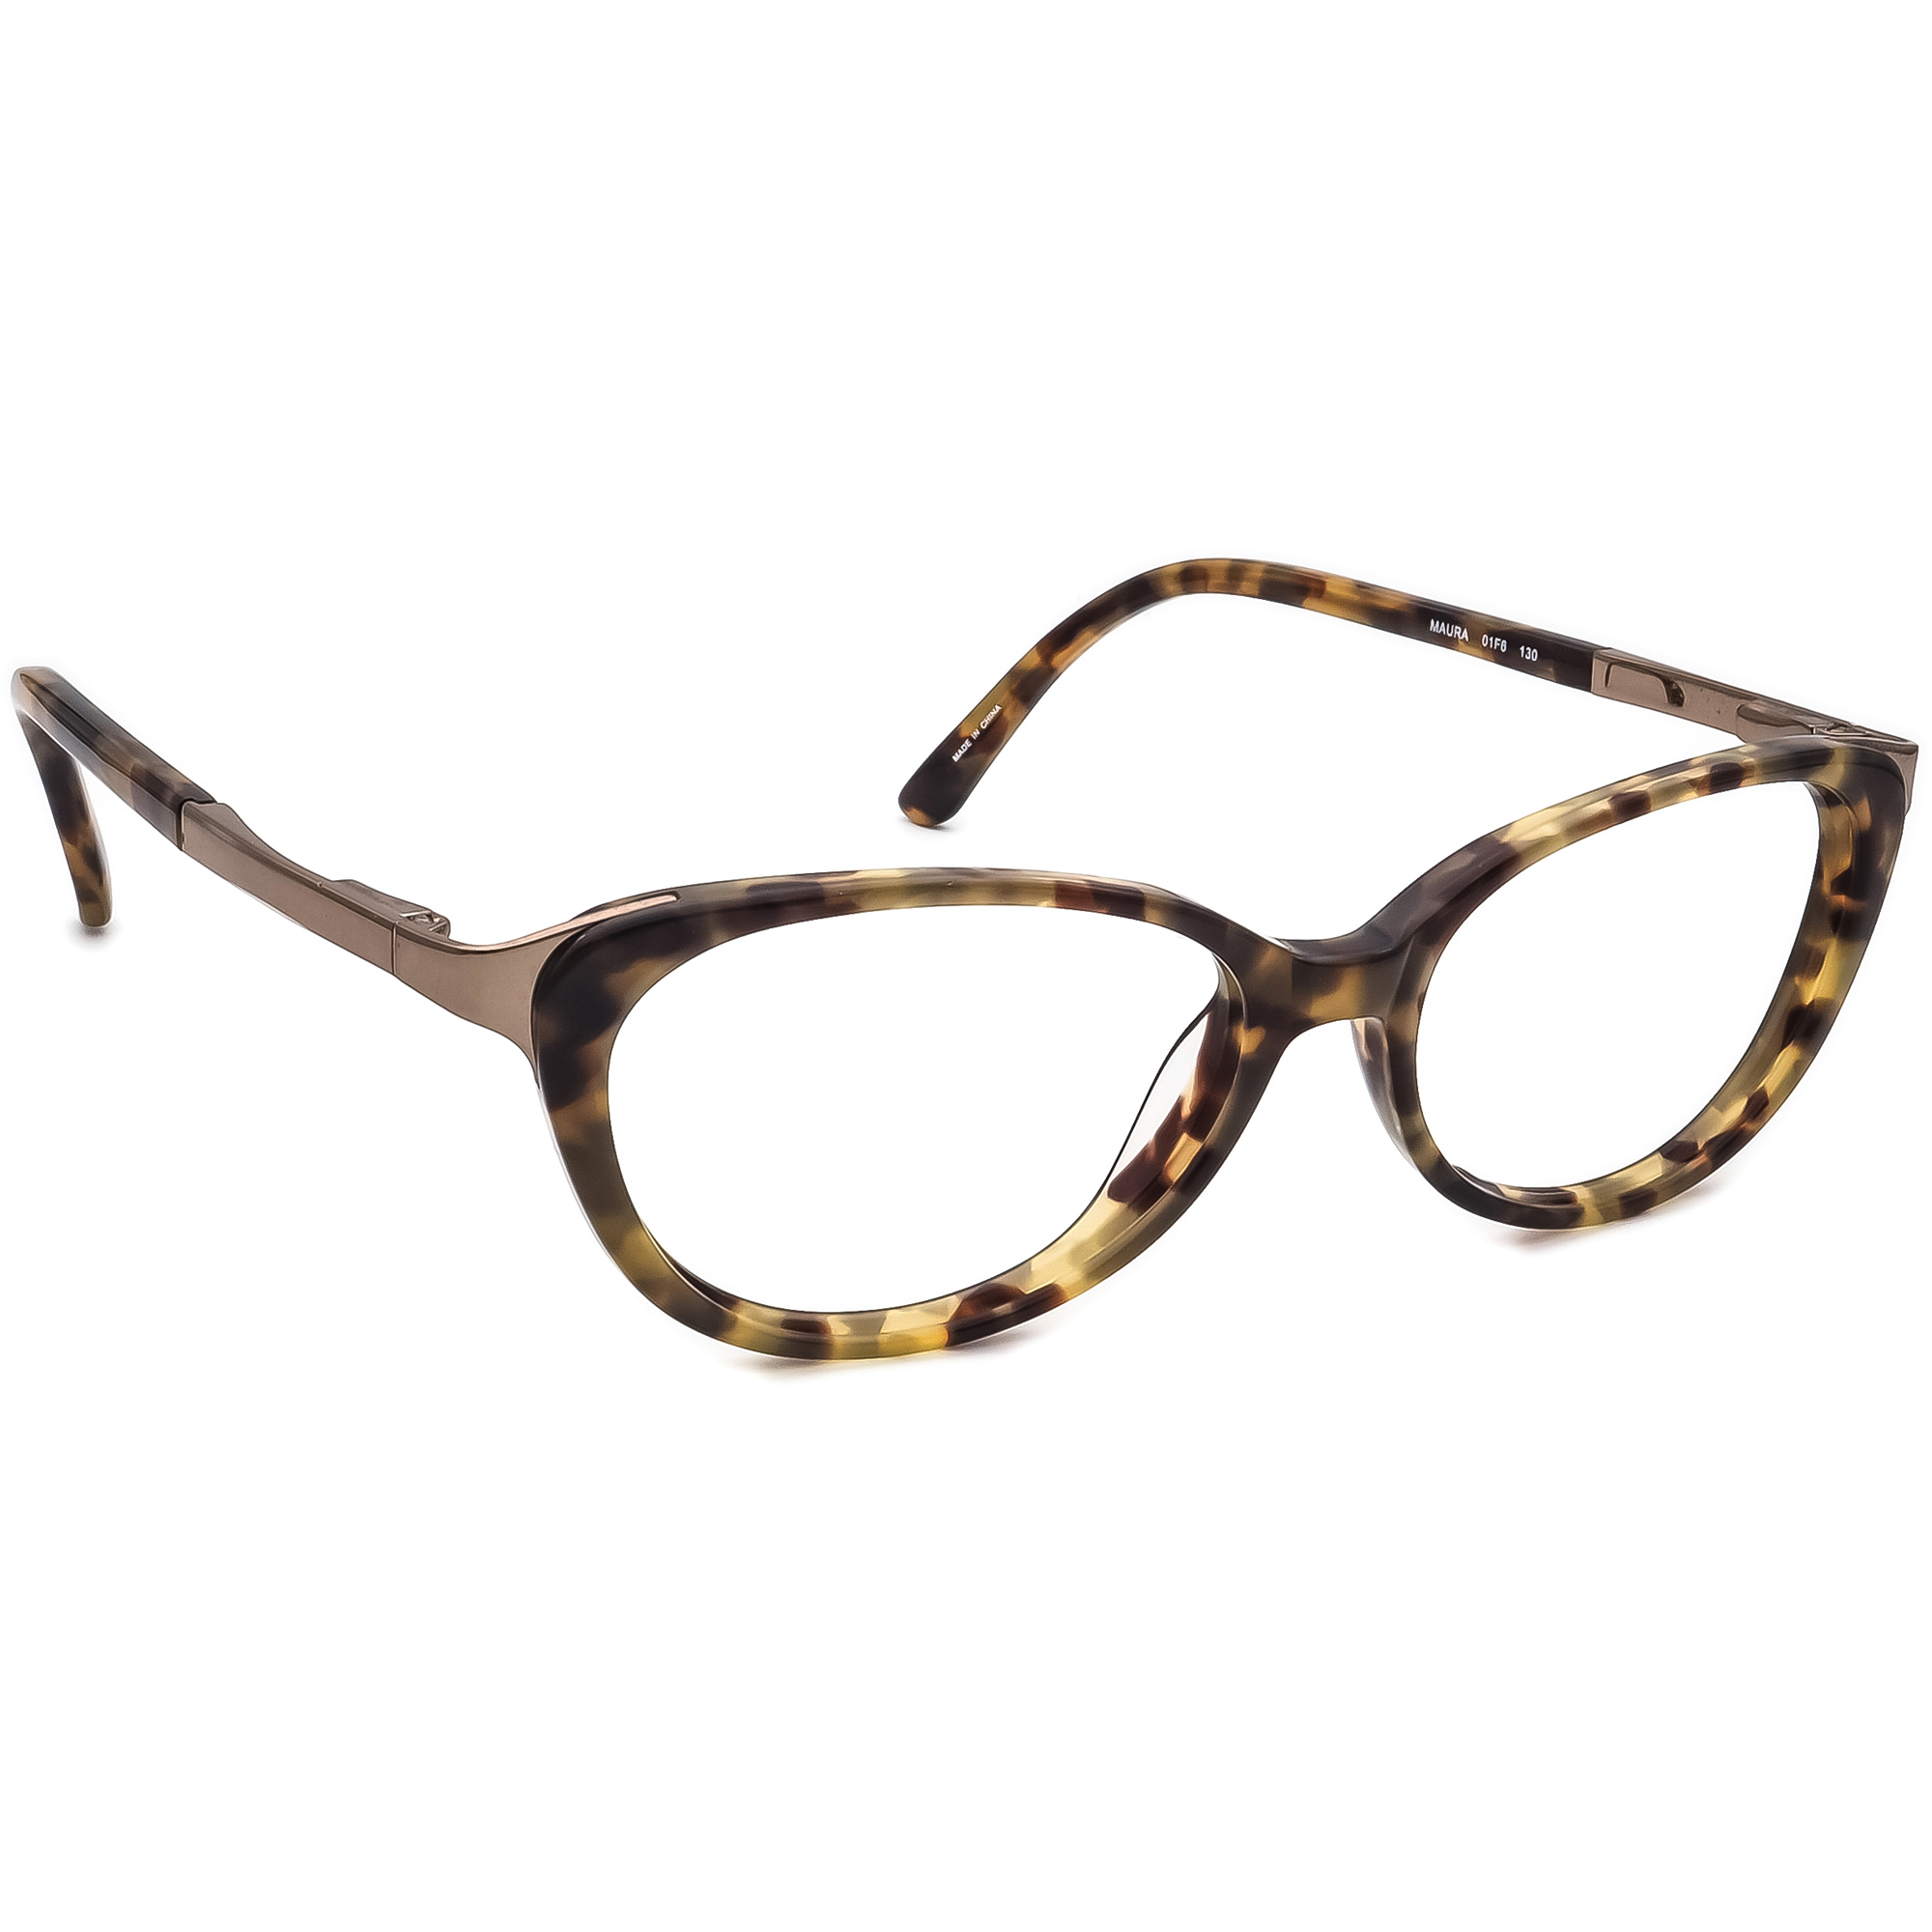 Kate Spade Women's Eyeglasses Maura 01F6 Tortoise Cat Eye Frame 50[]15 130